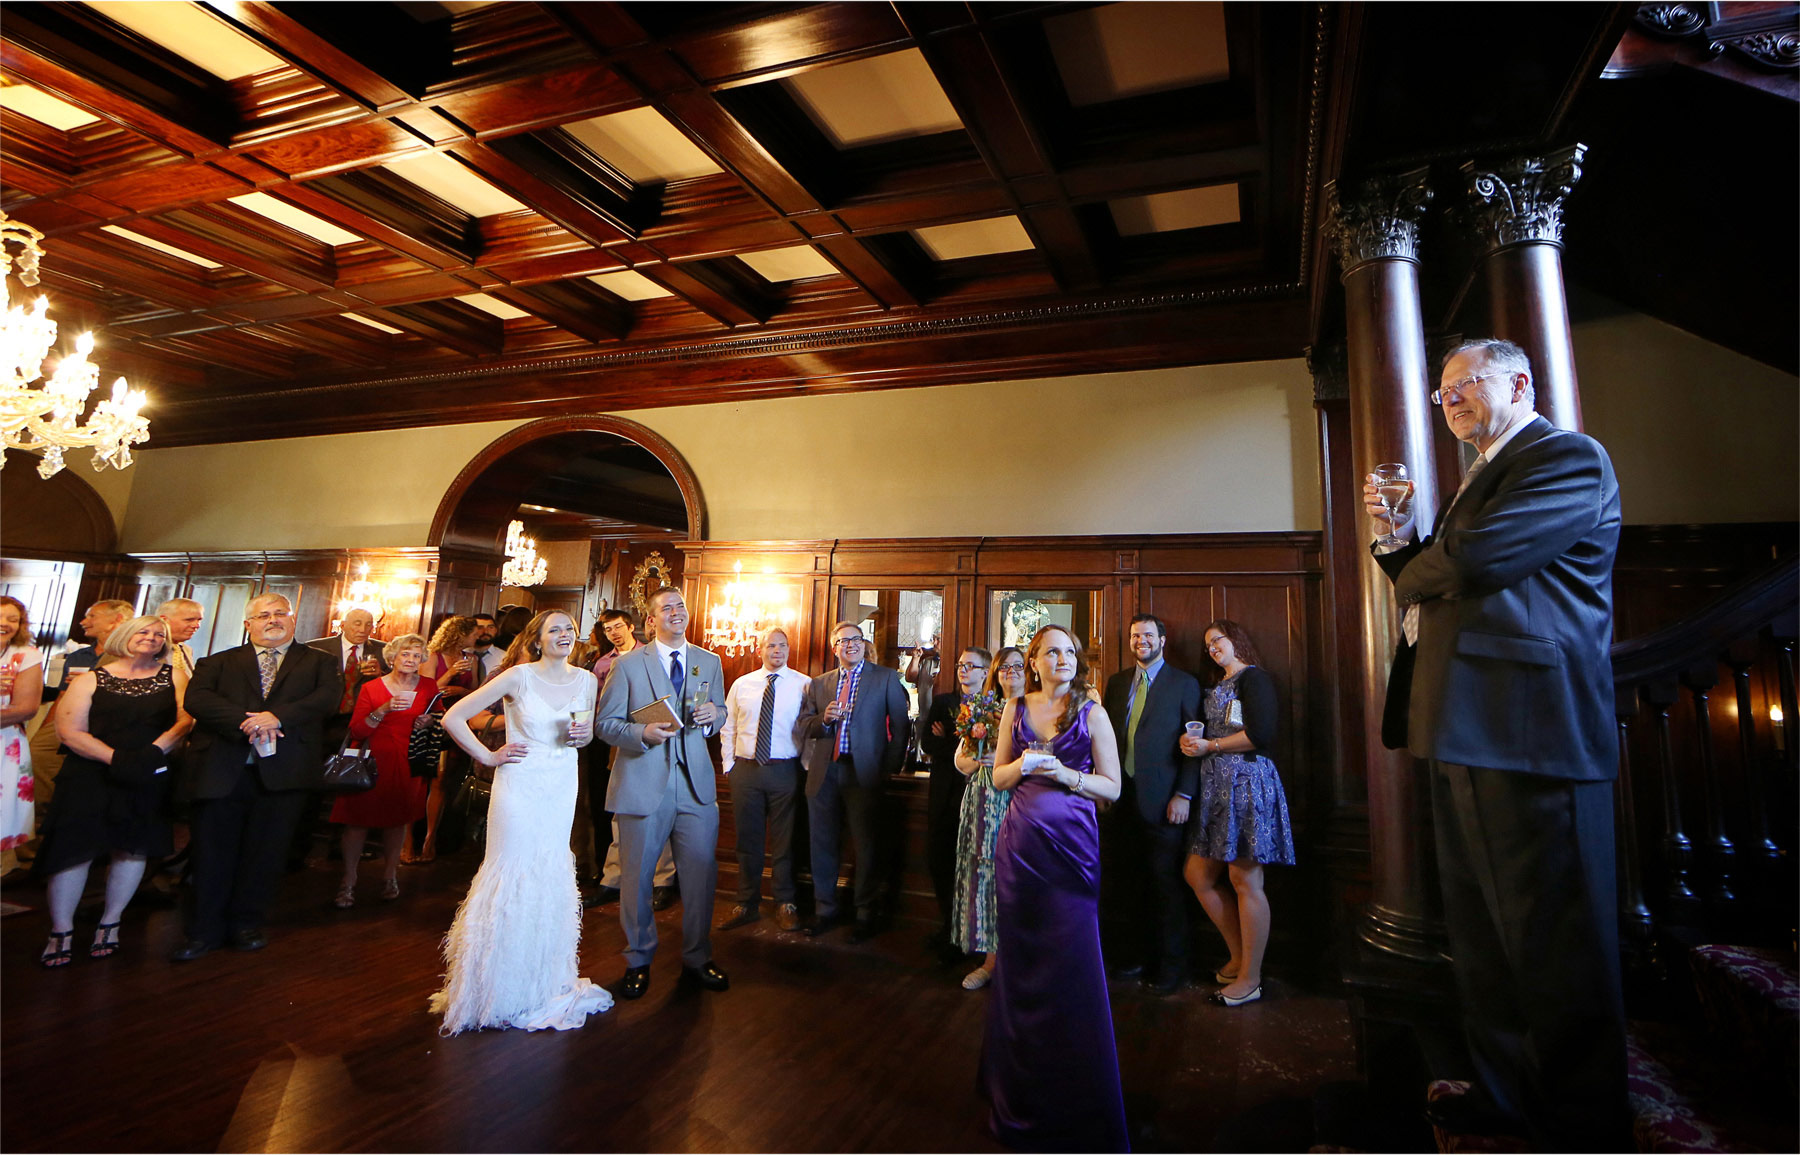 25-Minneapolis-Minnesota-Wedding-Photographer-by-Andrew-Vick-Photography-Summer-Bride-Groom-Reception-Father-Parents-Speeches-Toasts-Guests-Stephanie-and-Robert.jpg